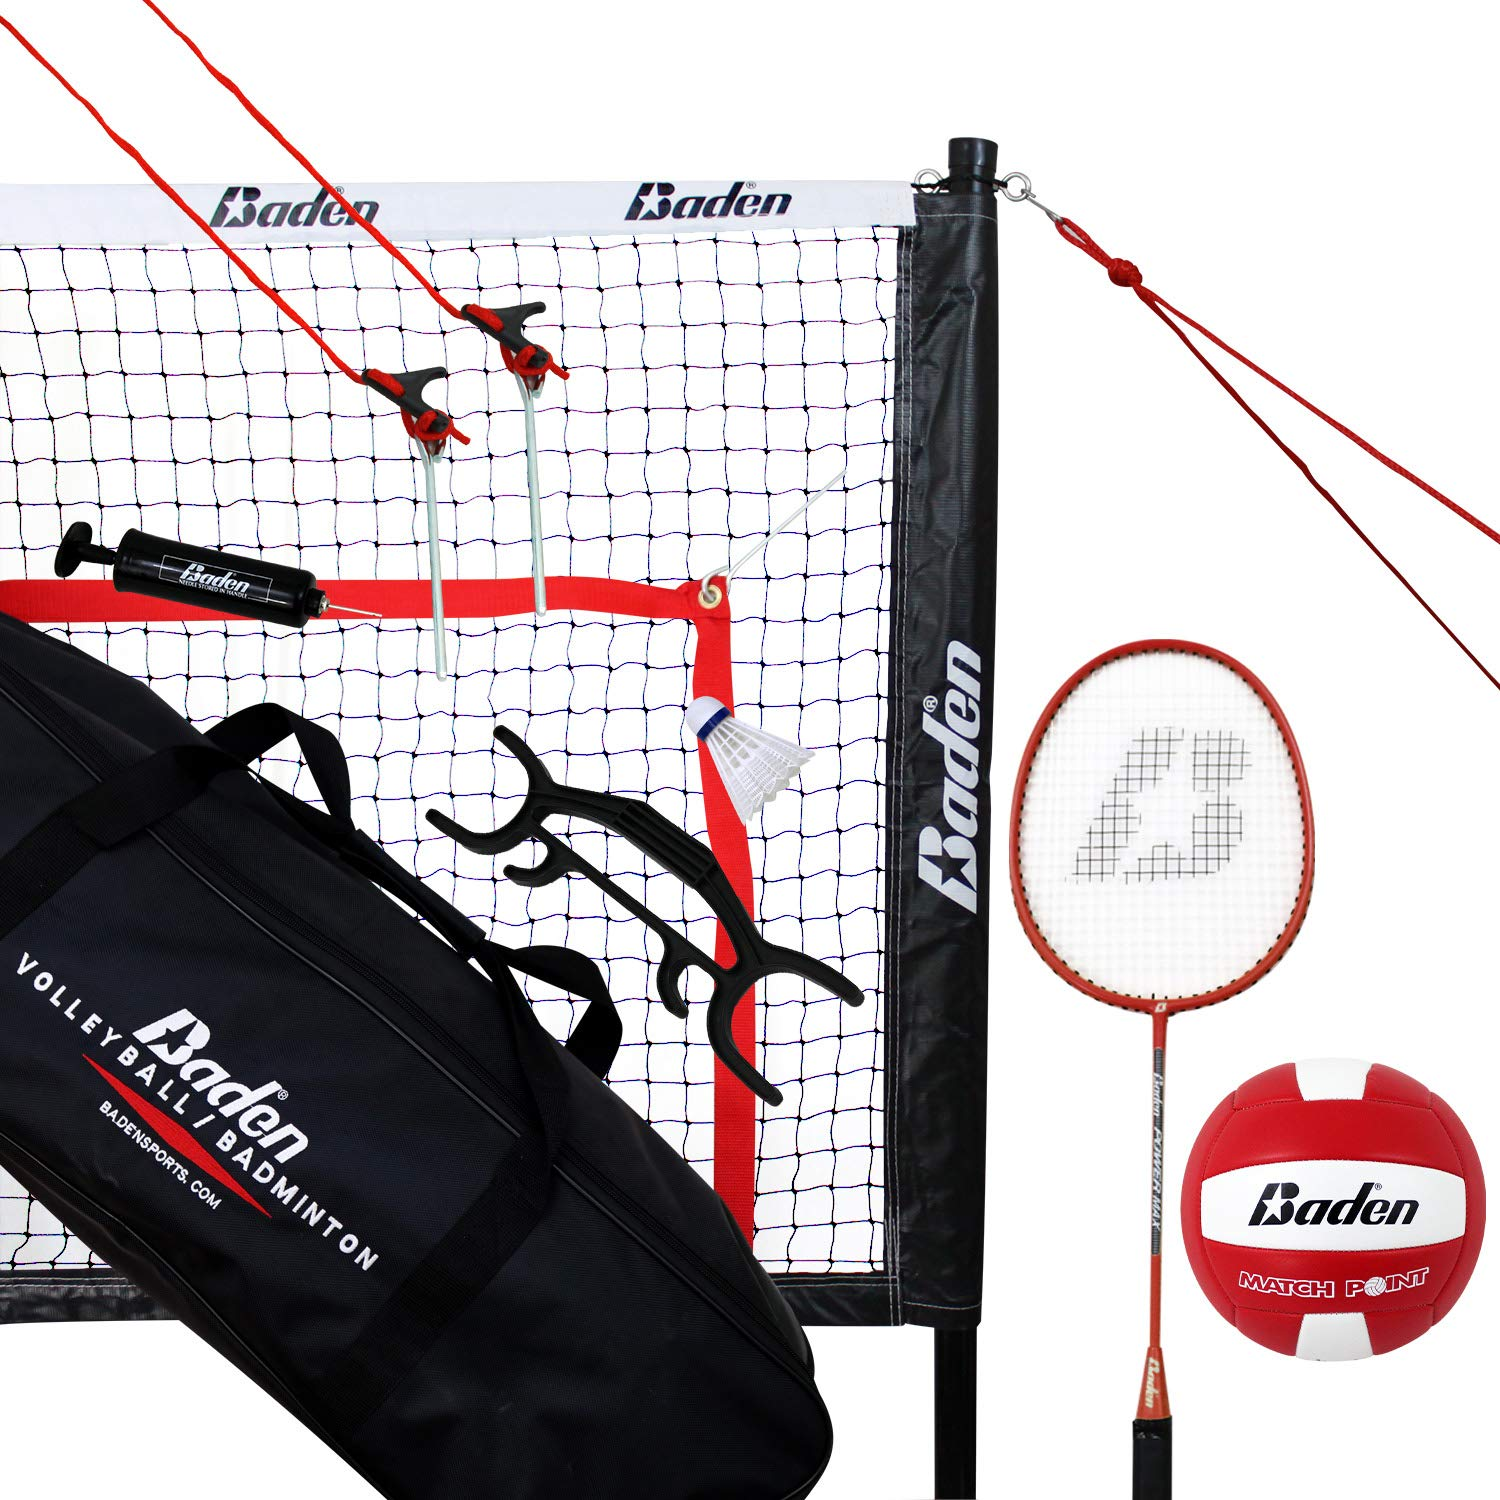 Baden Champions Series Outdoor Combo Badminton Volleyball Set Amazon Sg Sports Fitness Outdoors